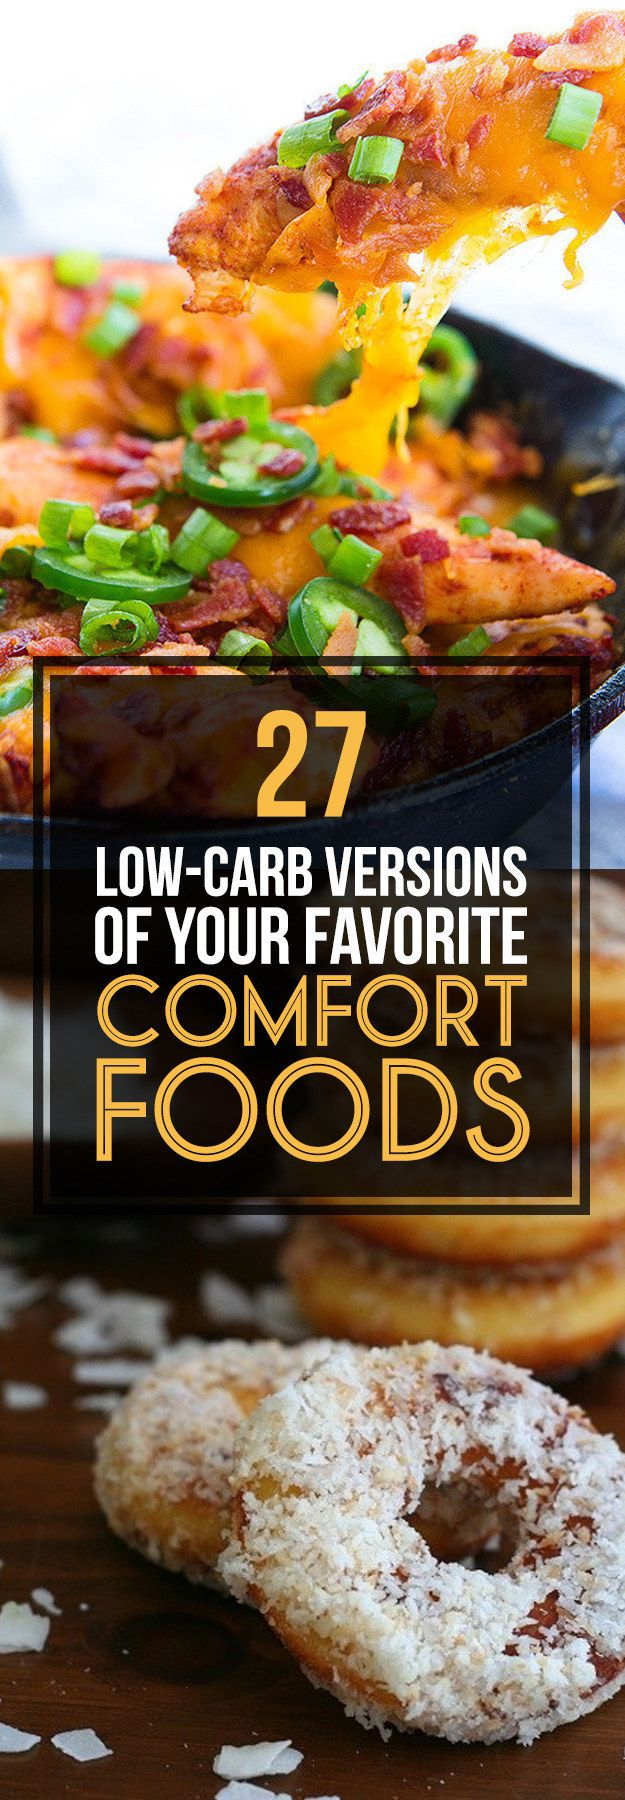 27 Low-Carb Versions Of Your Favorite Comfort Foods! Stressed? Need to Lose Weight too? I have my clients stock up during stressful times on these! I personally lost sixty pounds and used essential lotions and creams to keep my skin tight and to avoid stretch marks. check out the posts! https://victoriajohnson.wordpress.com